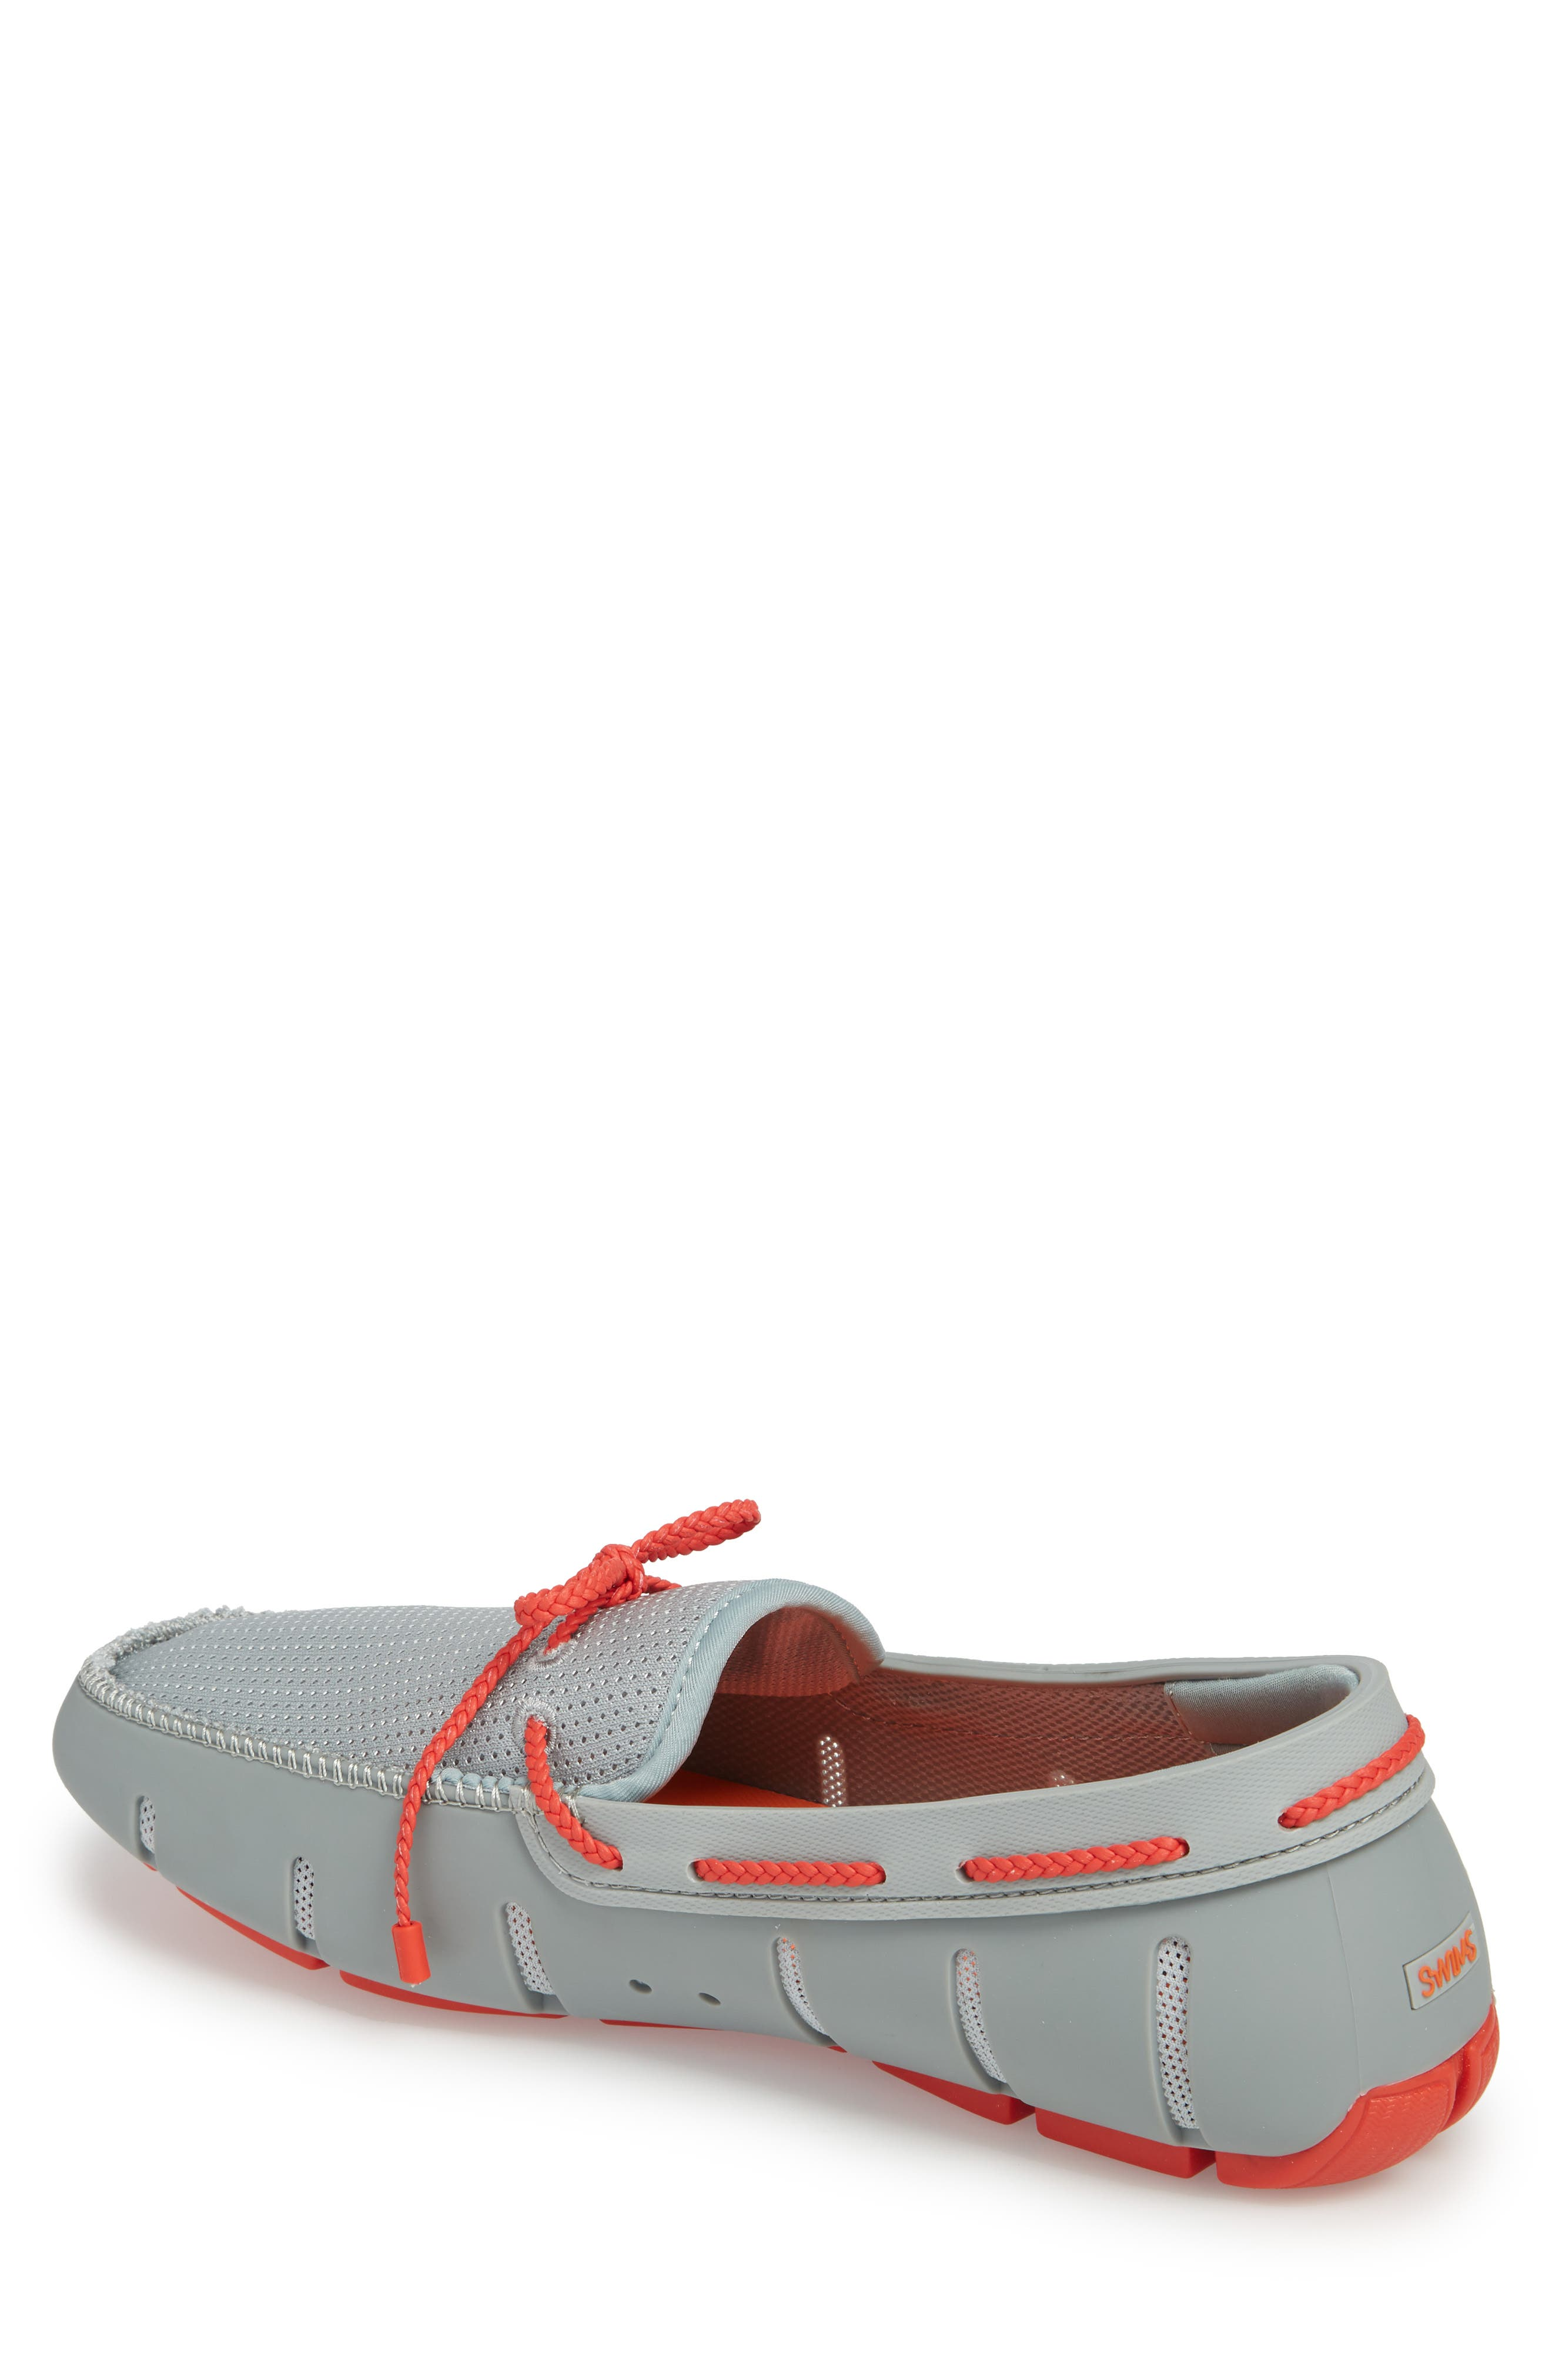 Lace Loafer,                             Alternate thumbnail 2, color,                             LIMESTONE/ TRAFFIC LIGHT